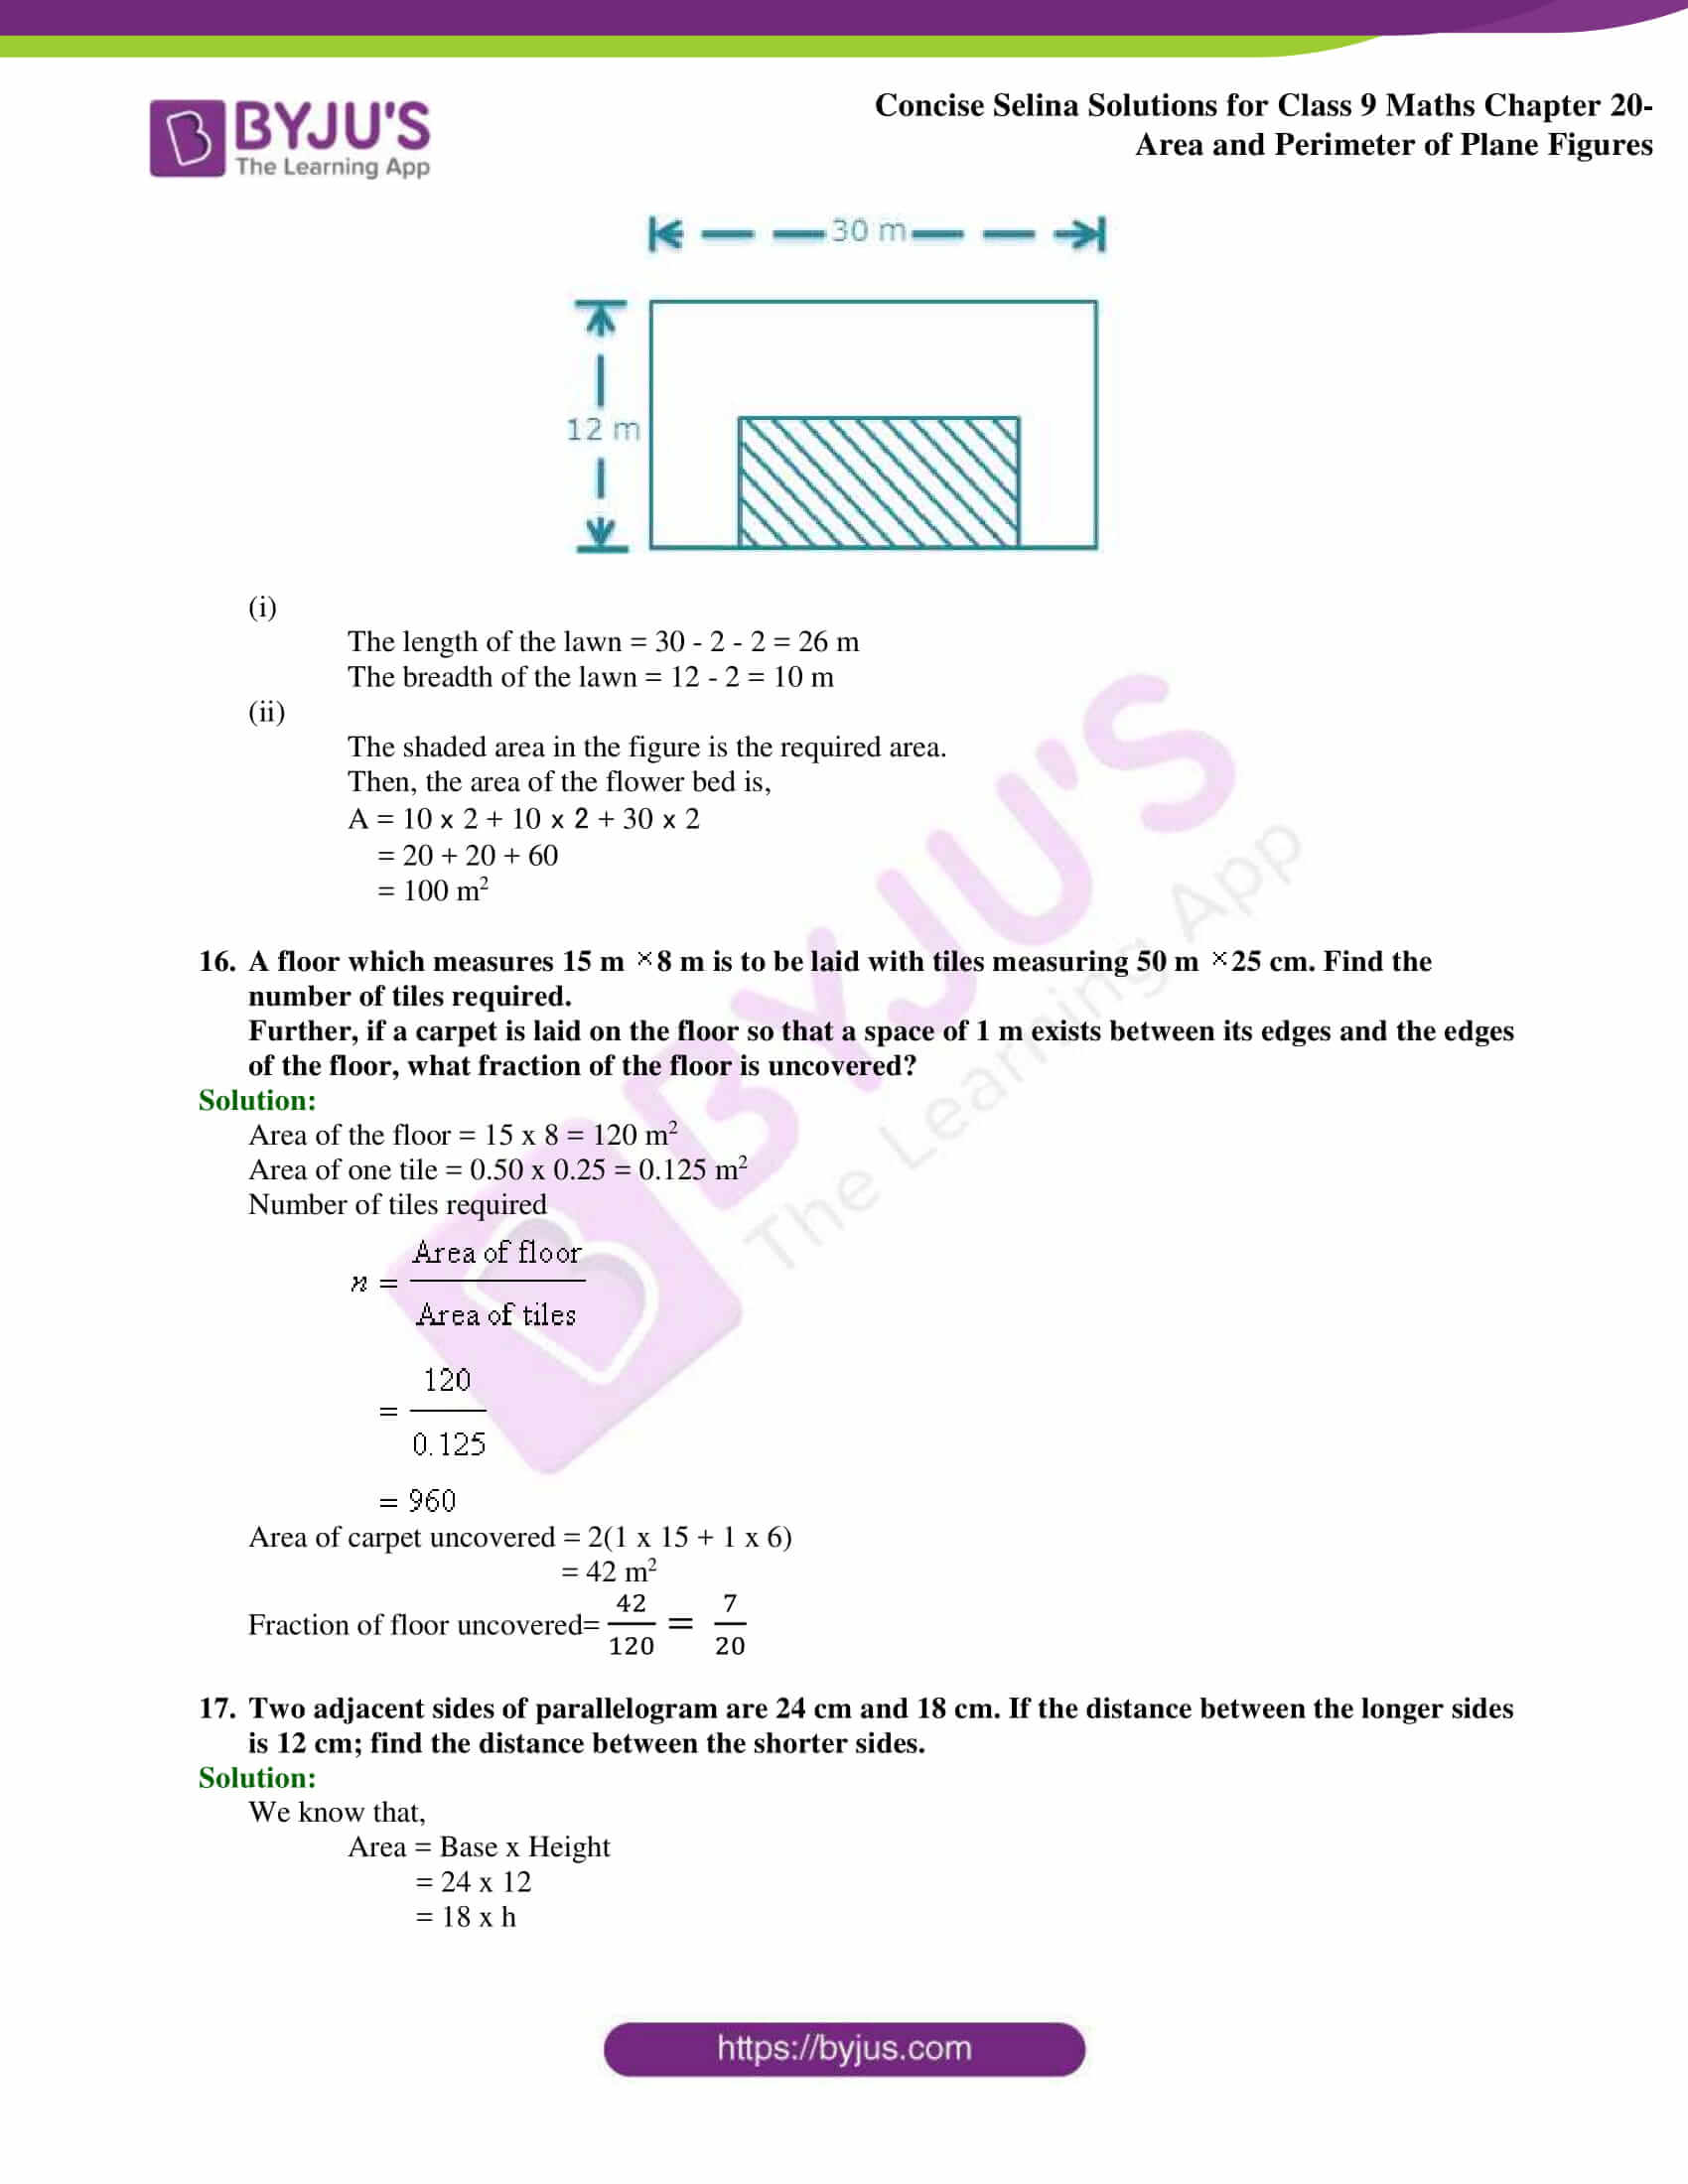 Concise Selina Solutions Class 9 Maths Chapter 20 Area and Perimeter of Plane part 18